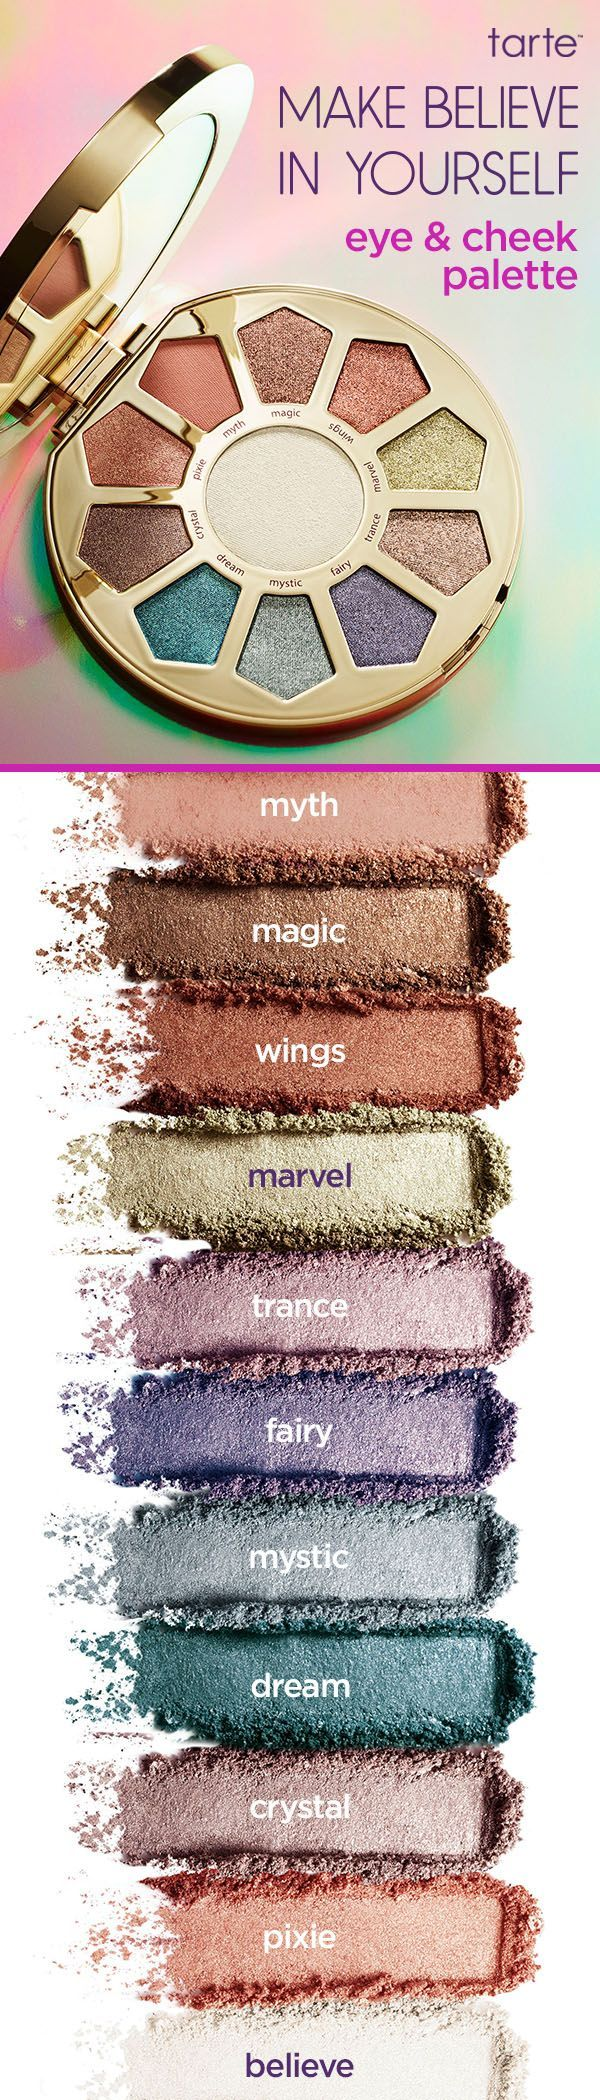 Swatches of our NEW #makebelieveinyourself limited-edition make believe in yourself eye & cheek palette! 10 luminous shadows to bring all your fairytale dreams to real life.